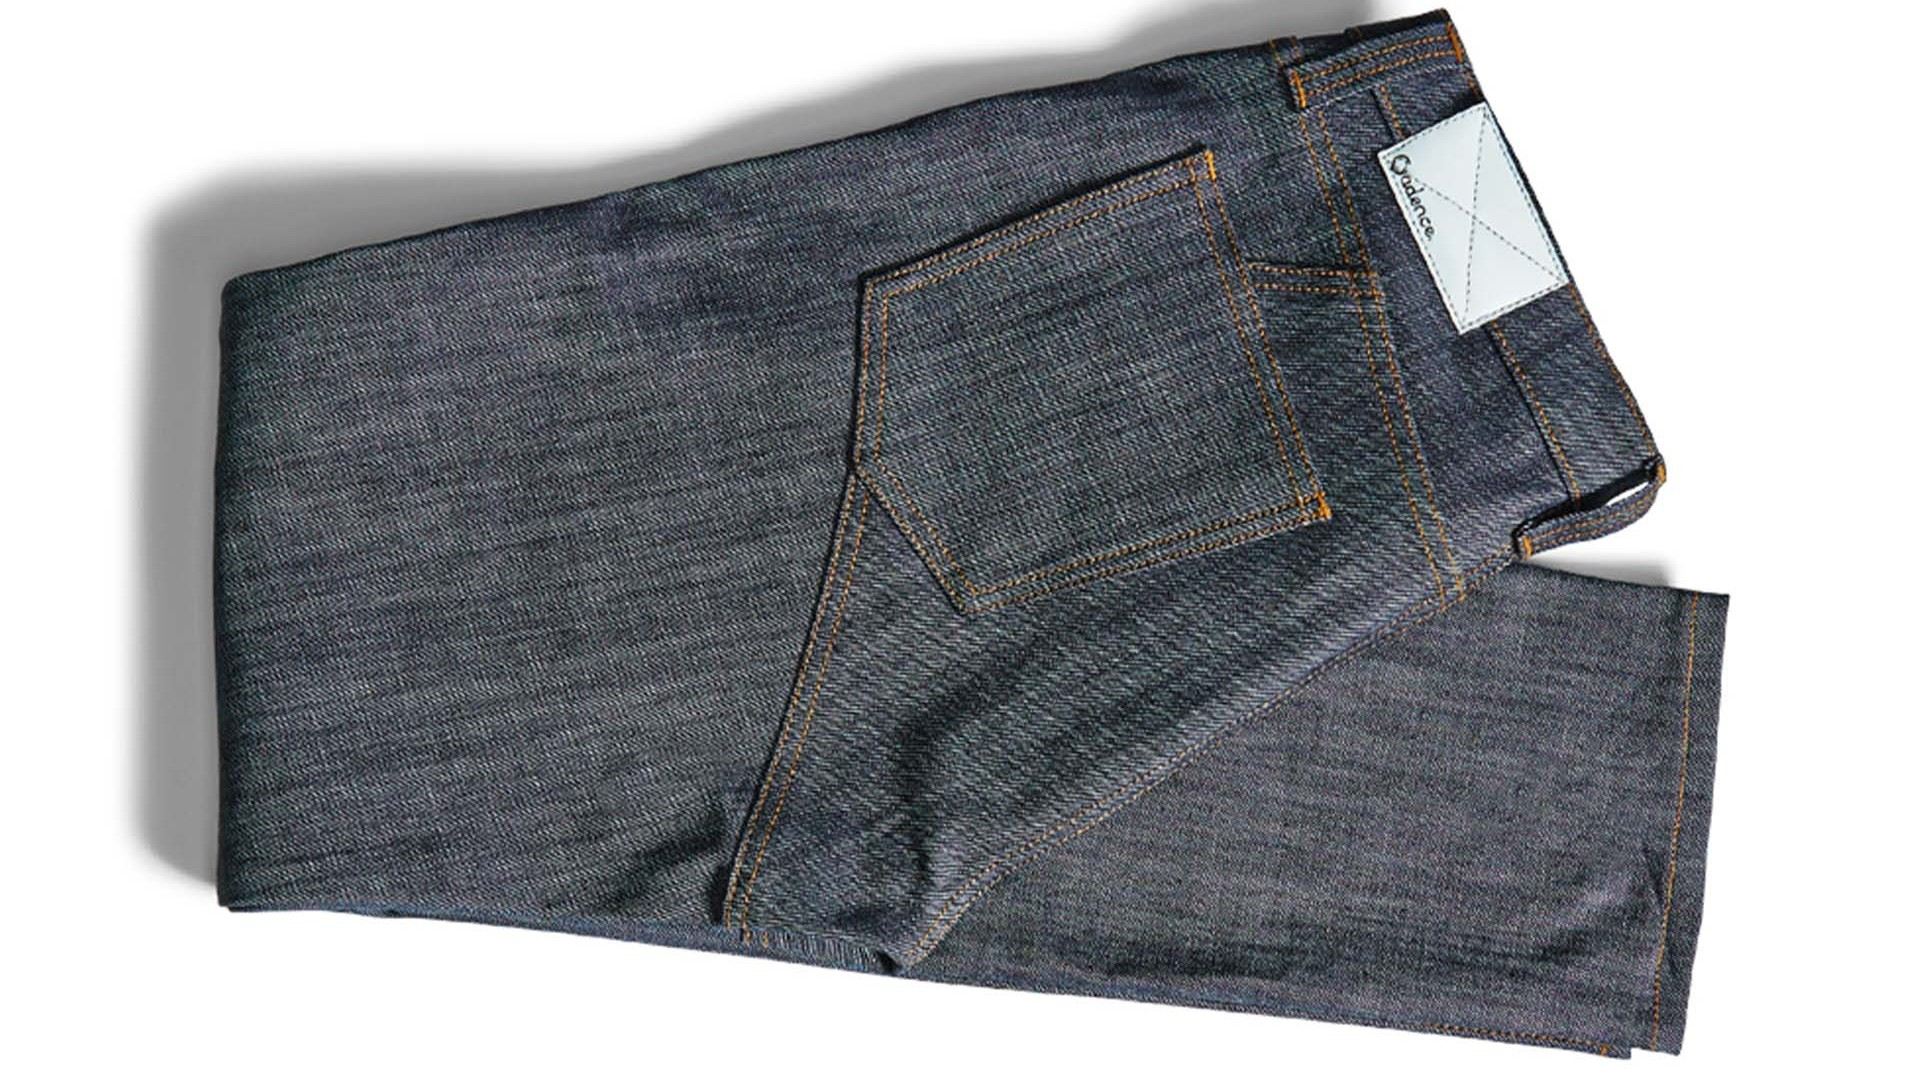 Cadence raw denim jeans best bike gear Tour de France